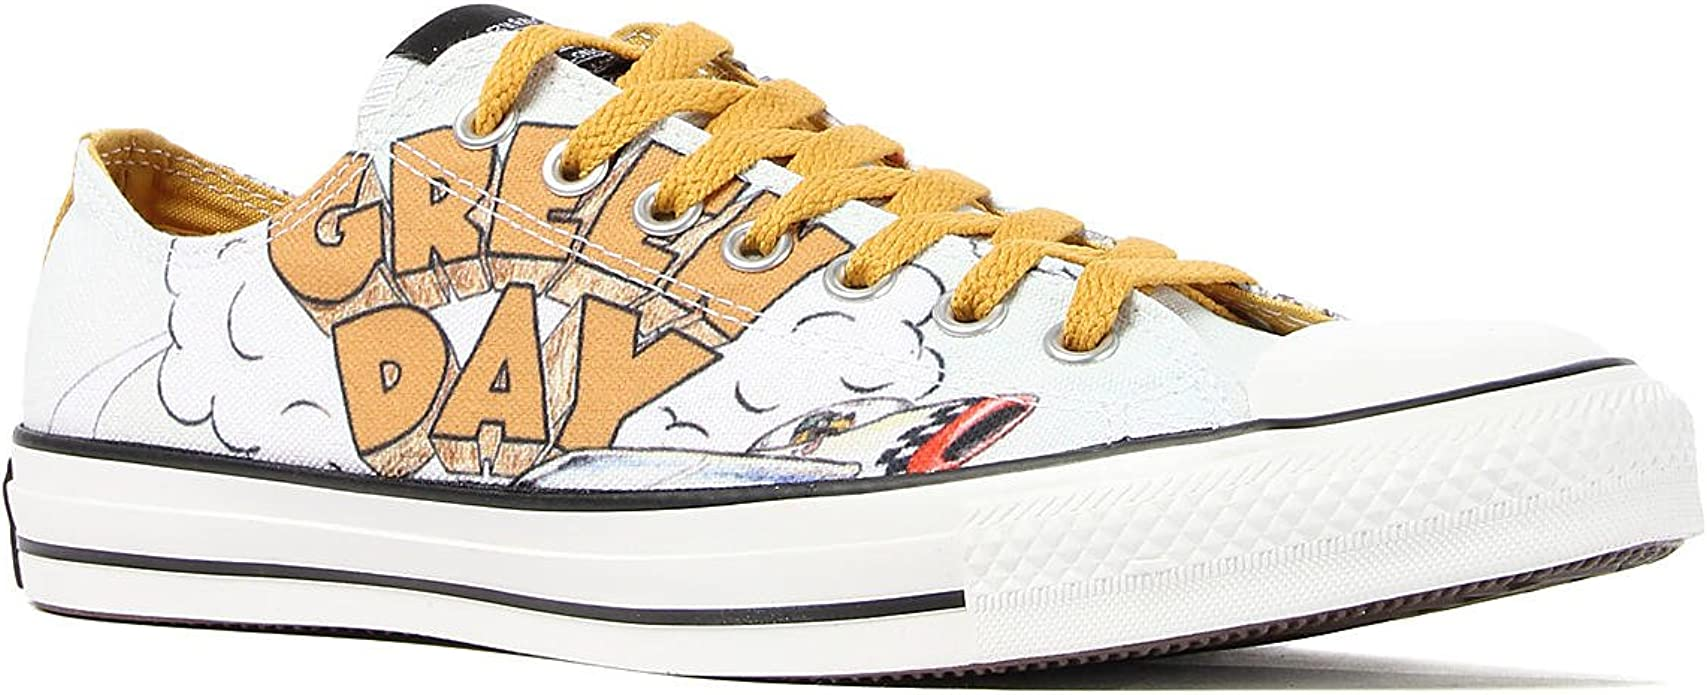 Chuck Taylor All Star Green Day Sneaker